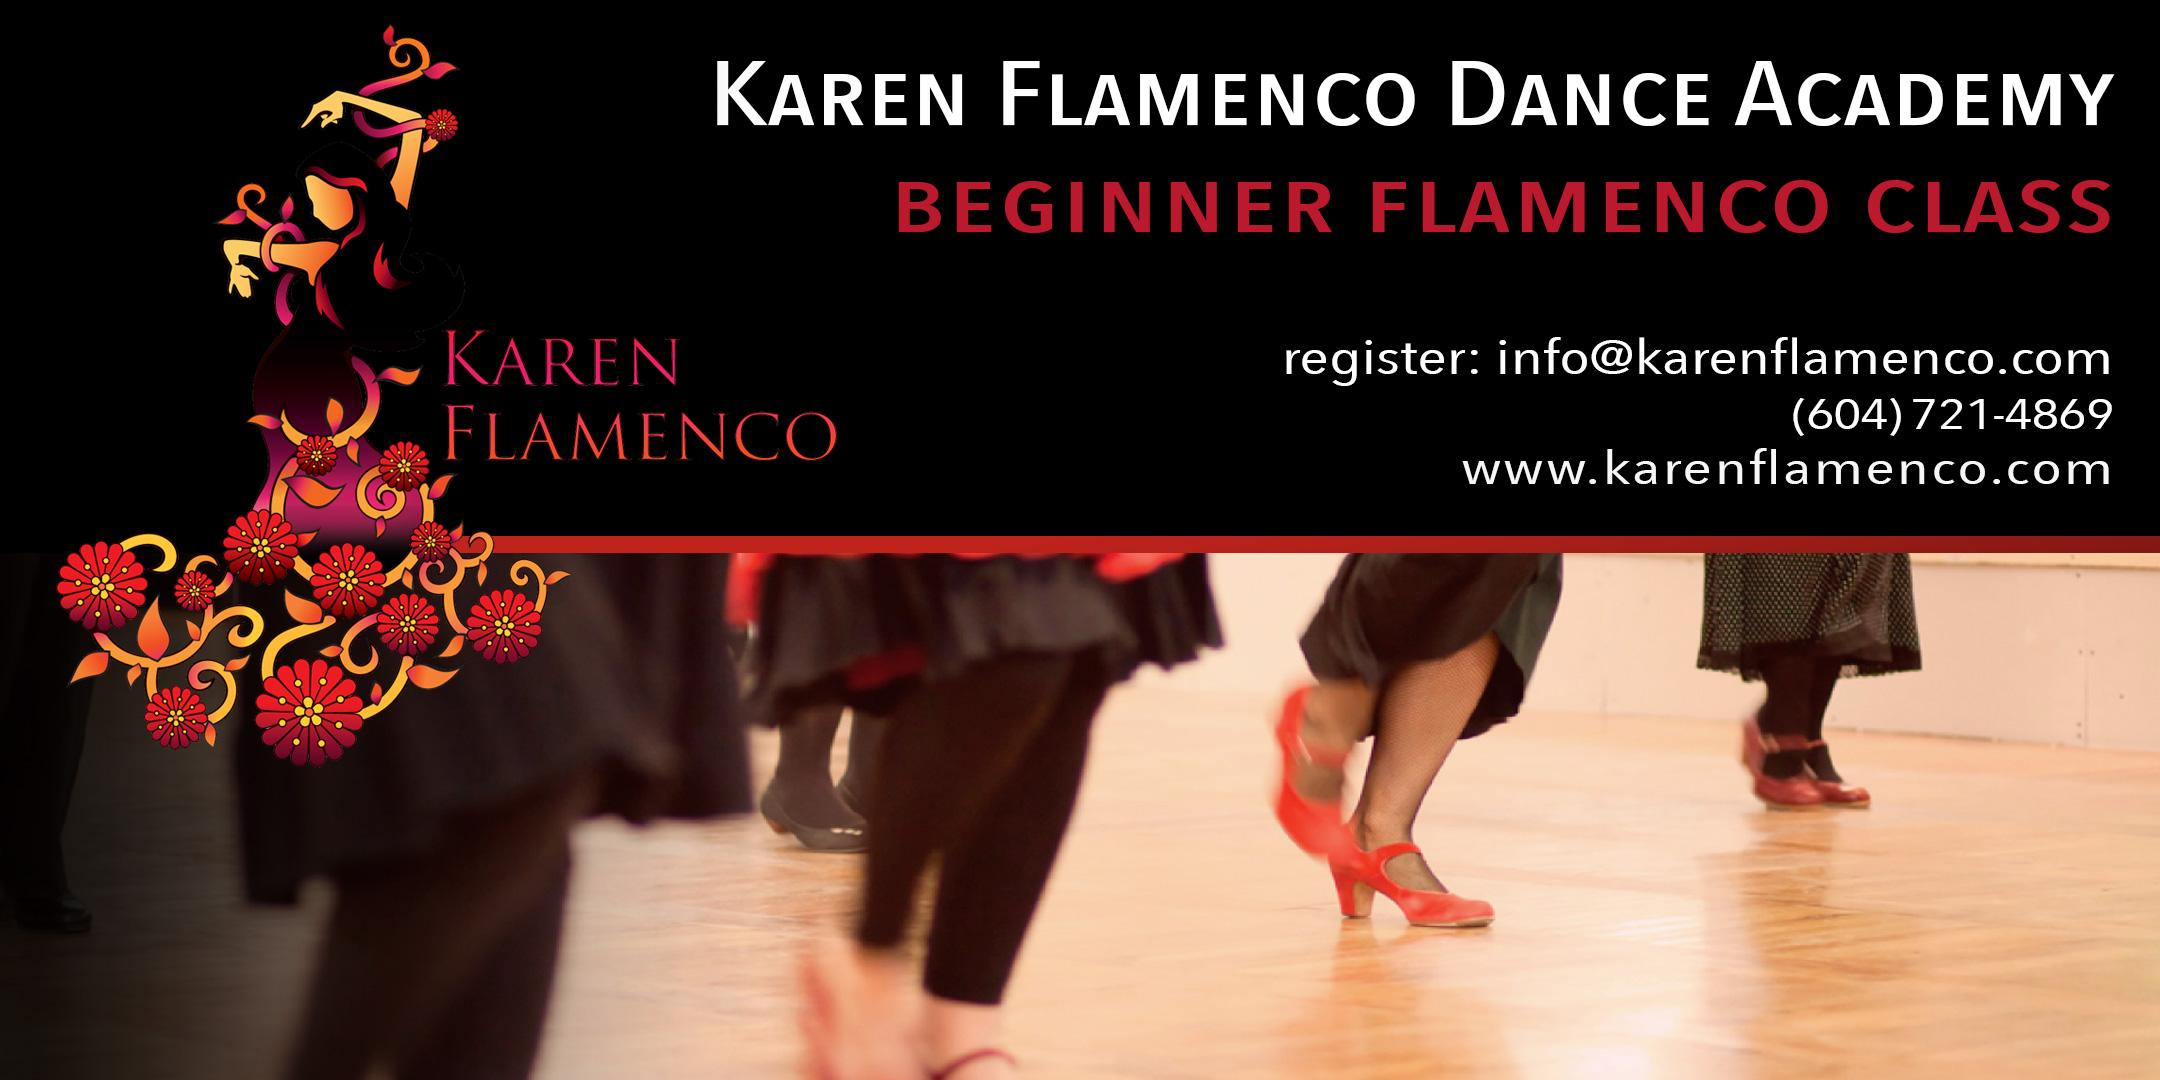 Karen Flamenco Dance Academy - Beginner Flamenco Class